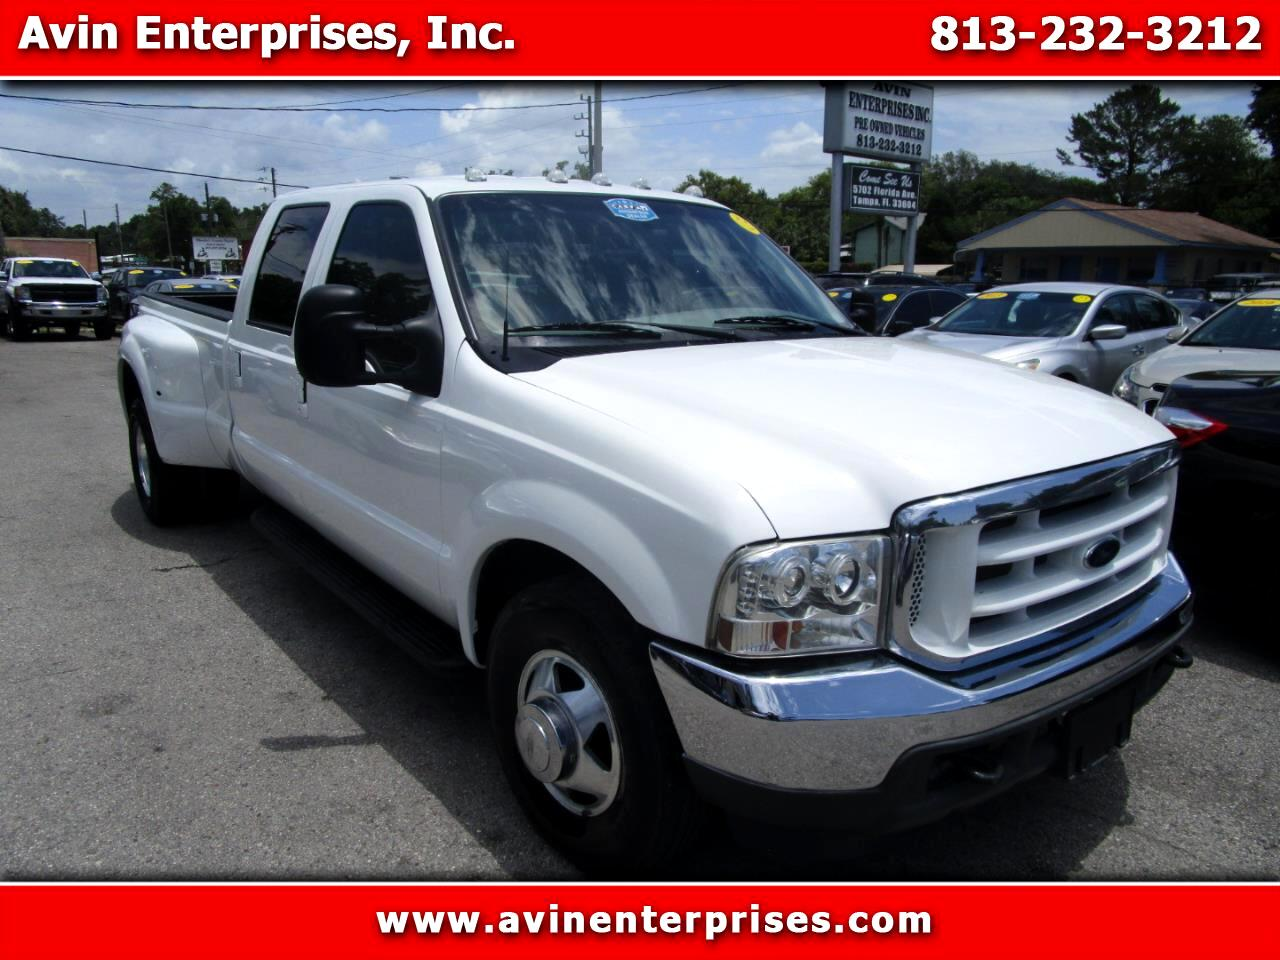 Ford F-350 SD Lariat Crew Cab Long Bed 2WD DRW 2001